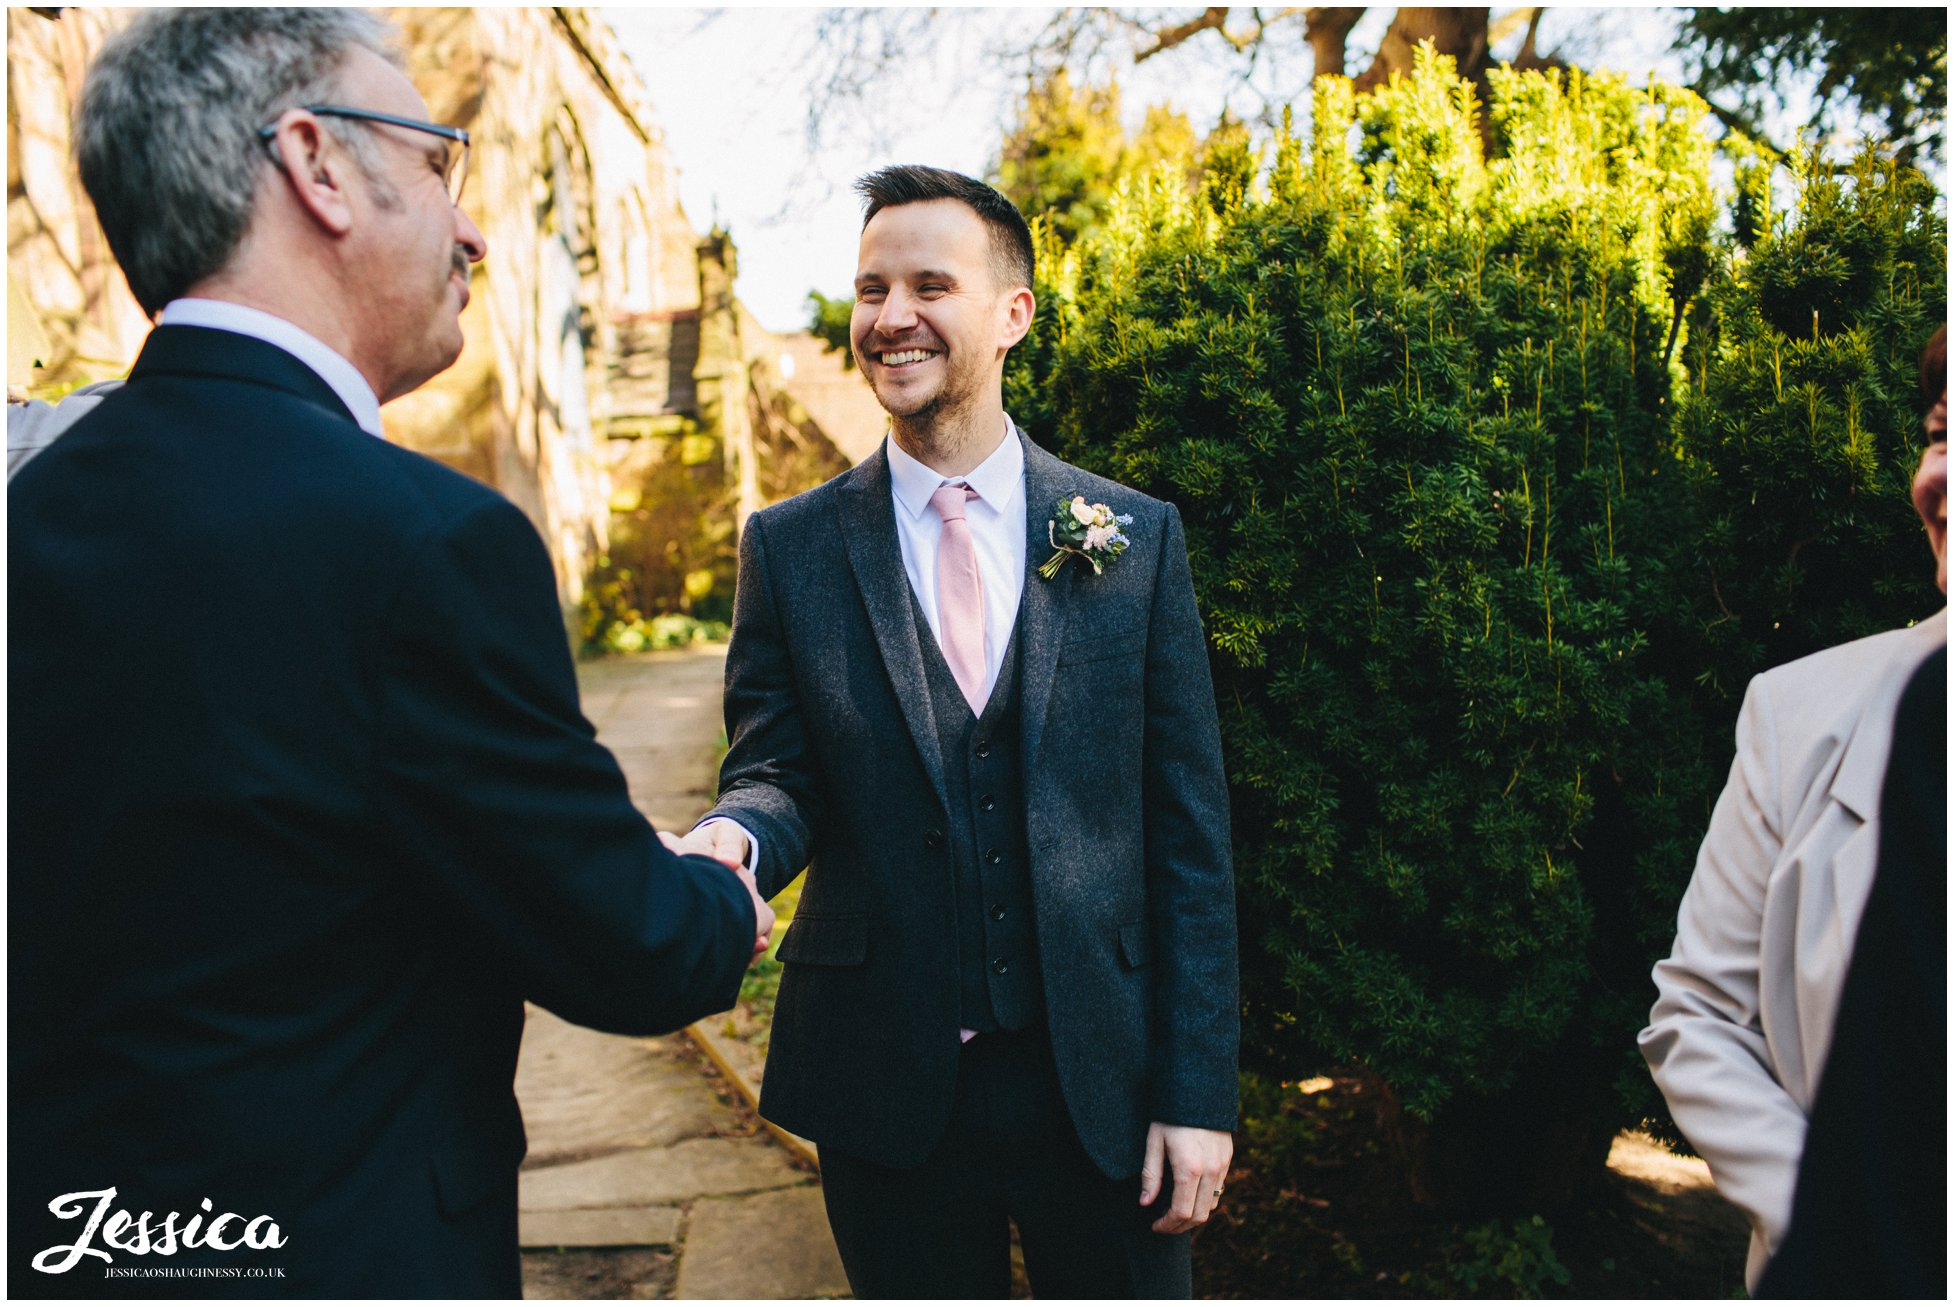 guest shakes the grooms hand after he gets married in hawarden